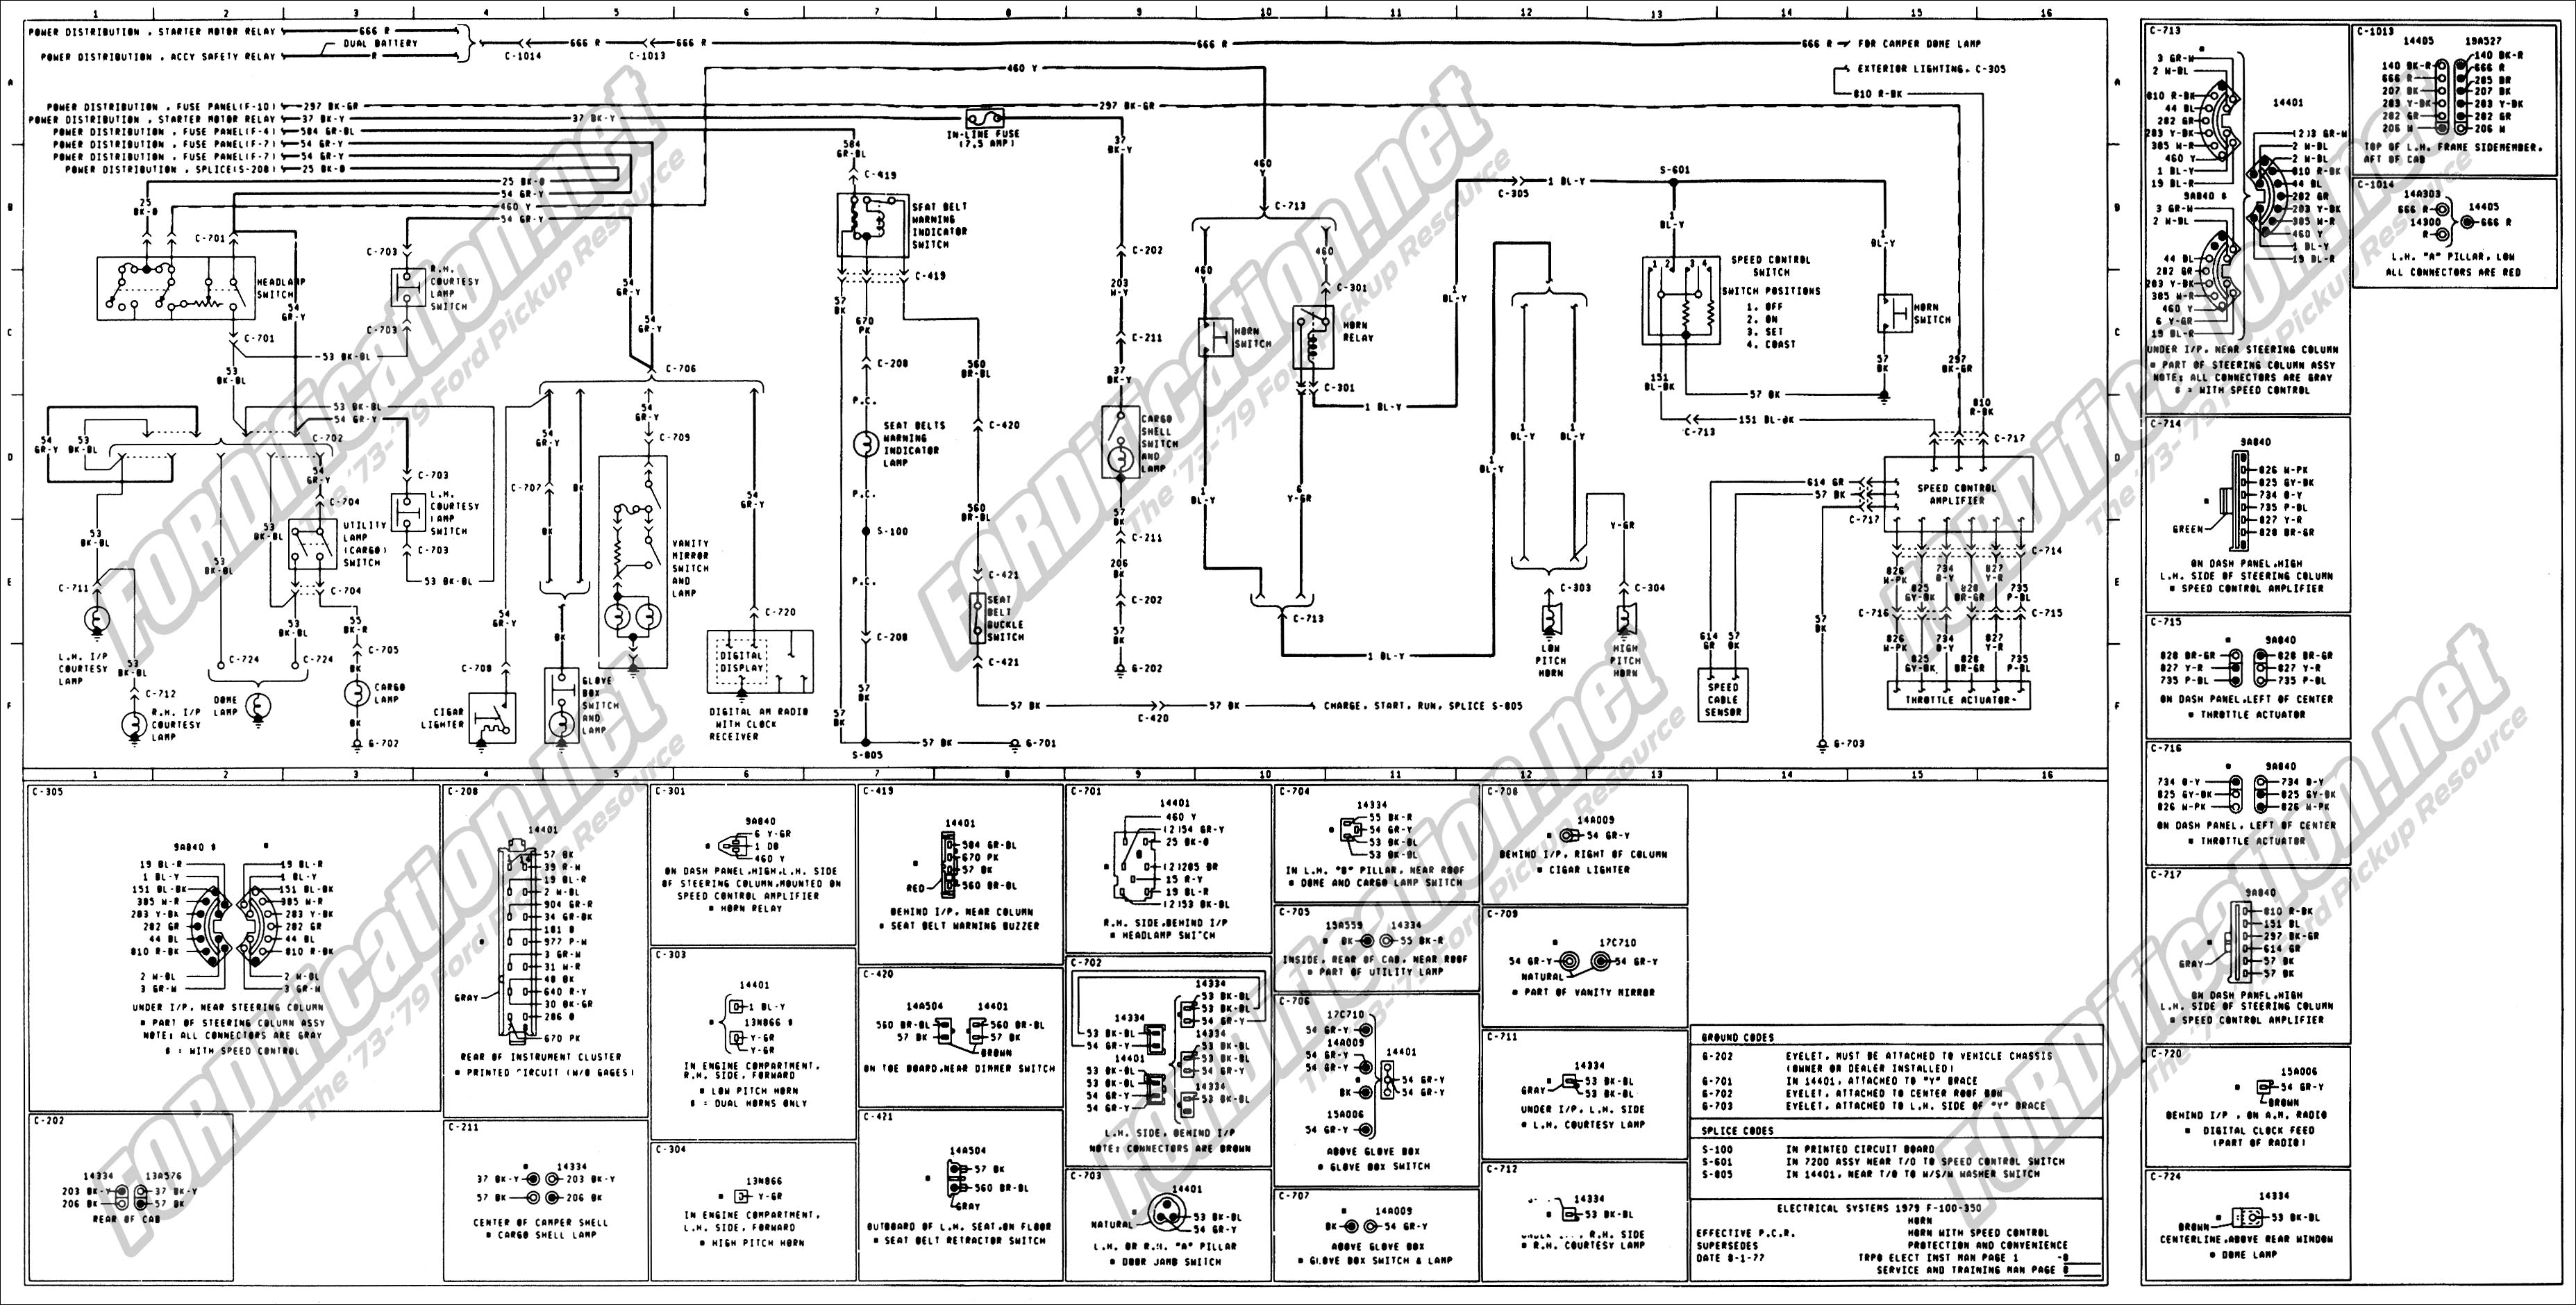 ford e250 wiring diagram auto electrical wiring diagram rh psu edu co fr  sanjaydutt me 2000 ford f250 wiring schematic 2001 ford f250 super duty  wiring ...